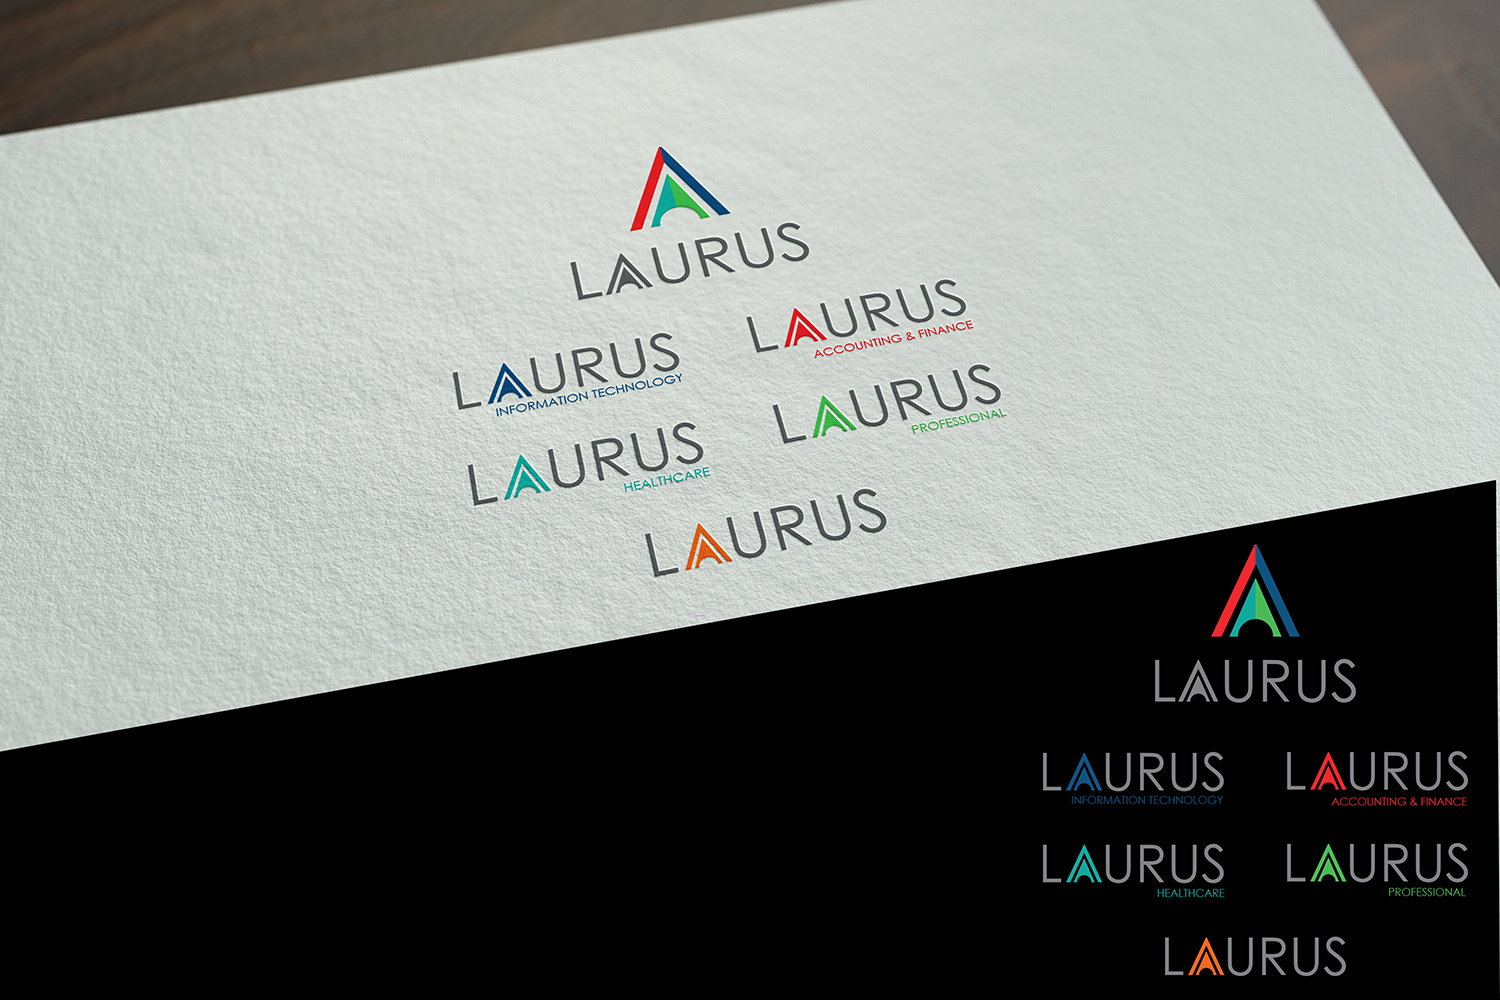 Professional bold logo design for laurus by sushil kumar design logo design by sushil kumar for create a unique logo for a recruiting firm that represents magicingreecefo Gallery